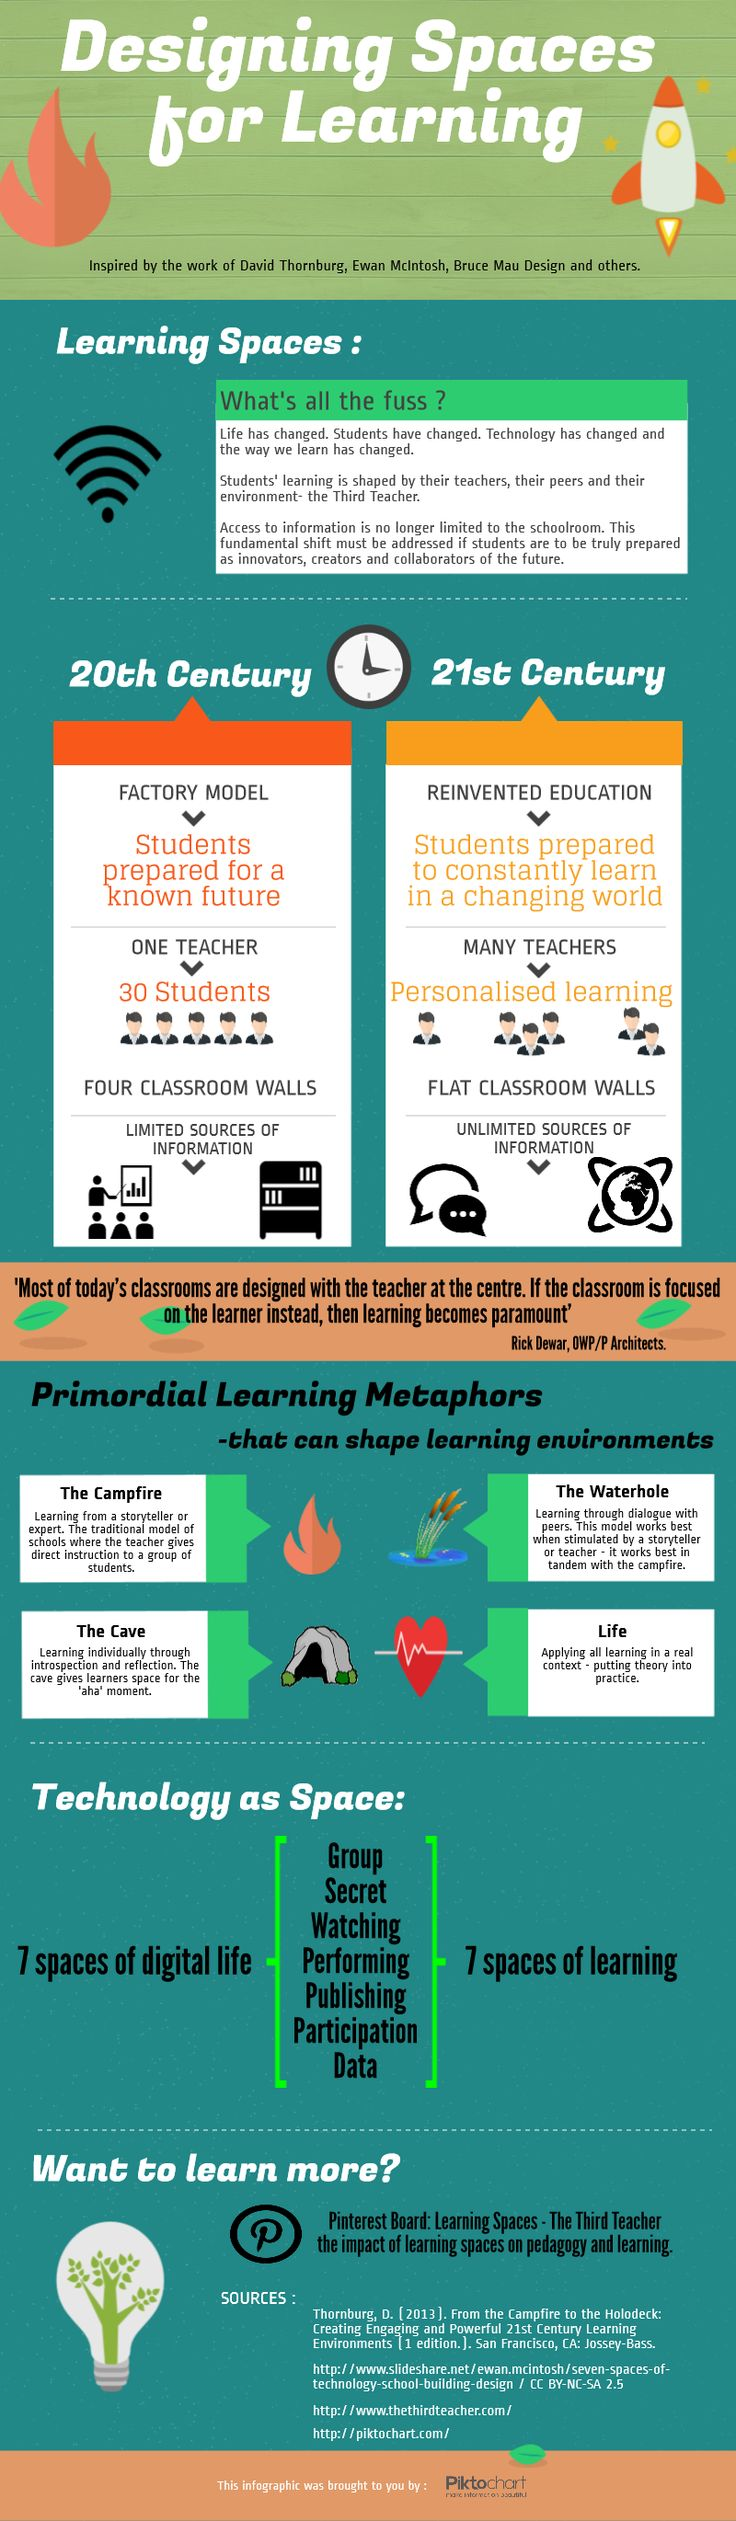 Learning Spaces - an infographic designed to encapsulate some of the latest thinking on contemporary learning space design.